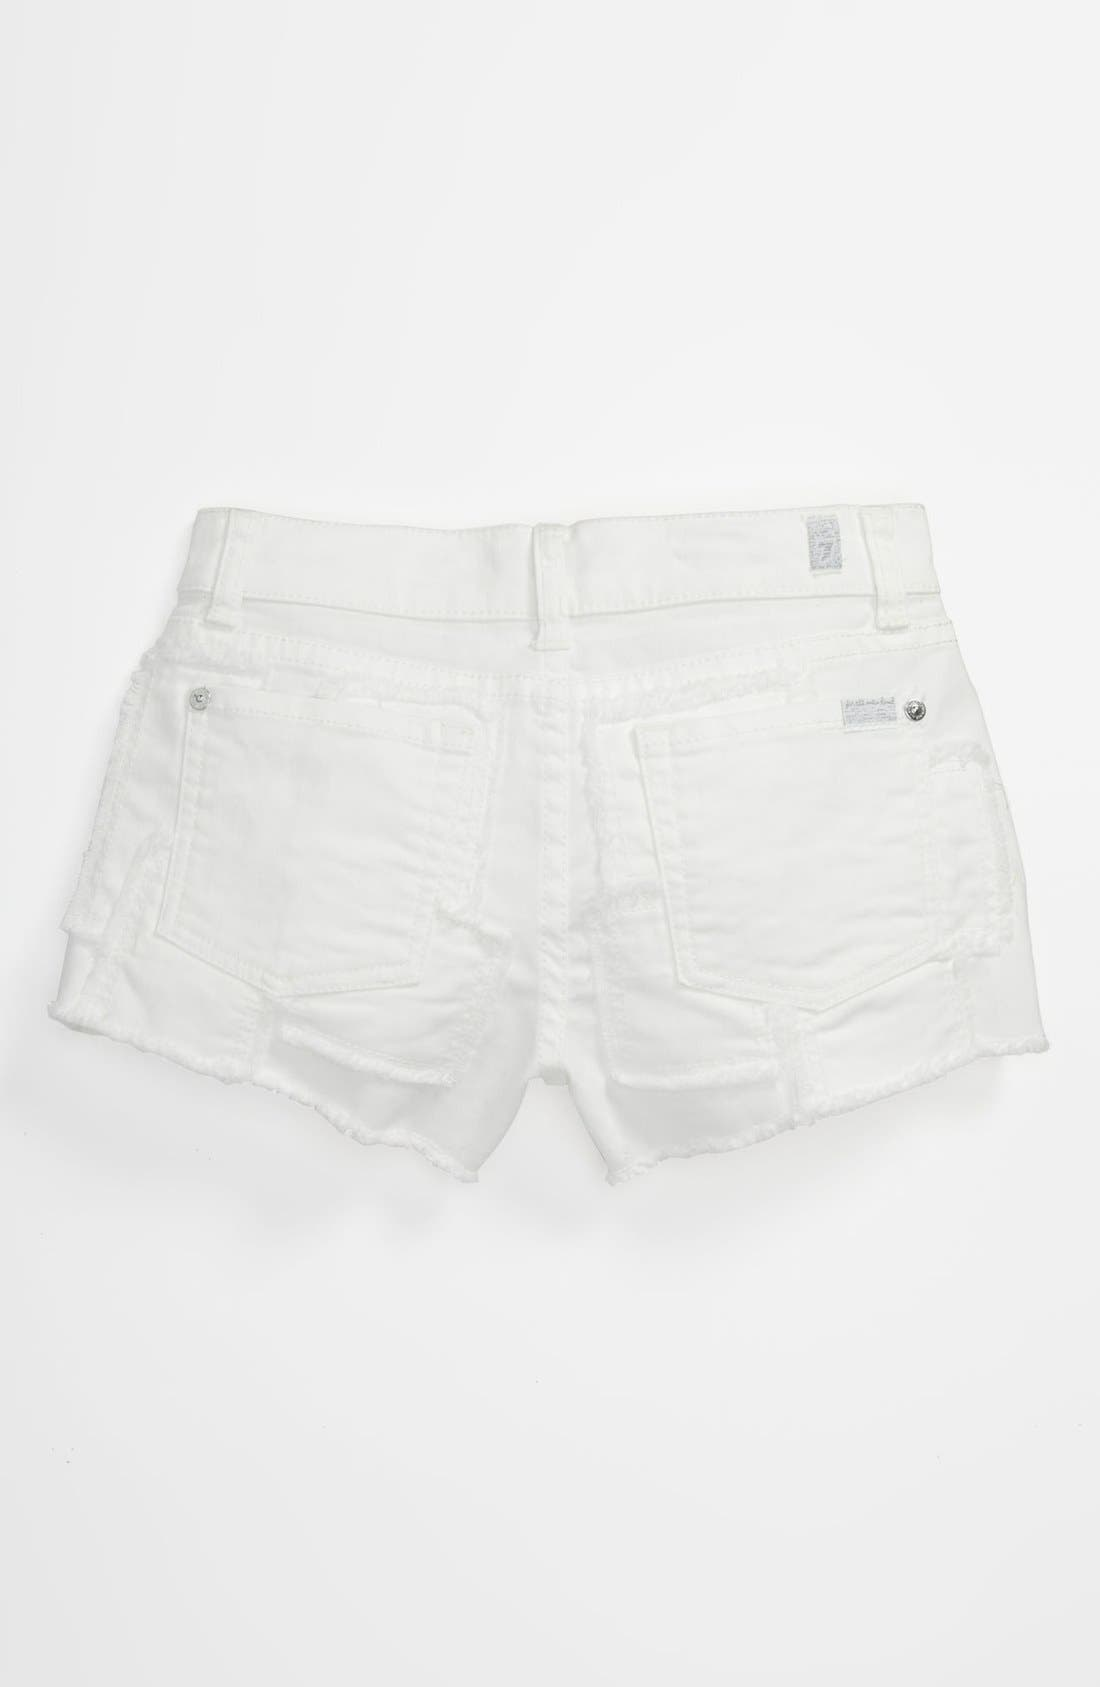 Alternate Image 1 Selected - 7 For All Mankind® Patch Shorts (Big Girls)